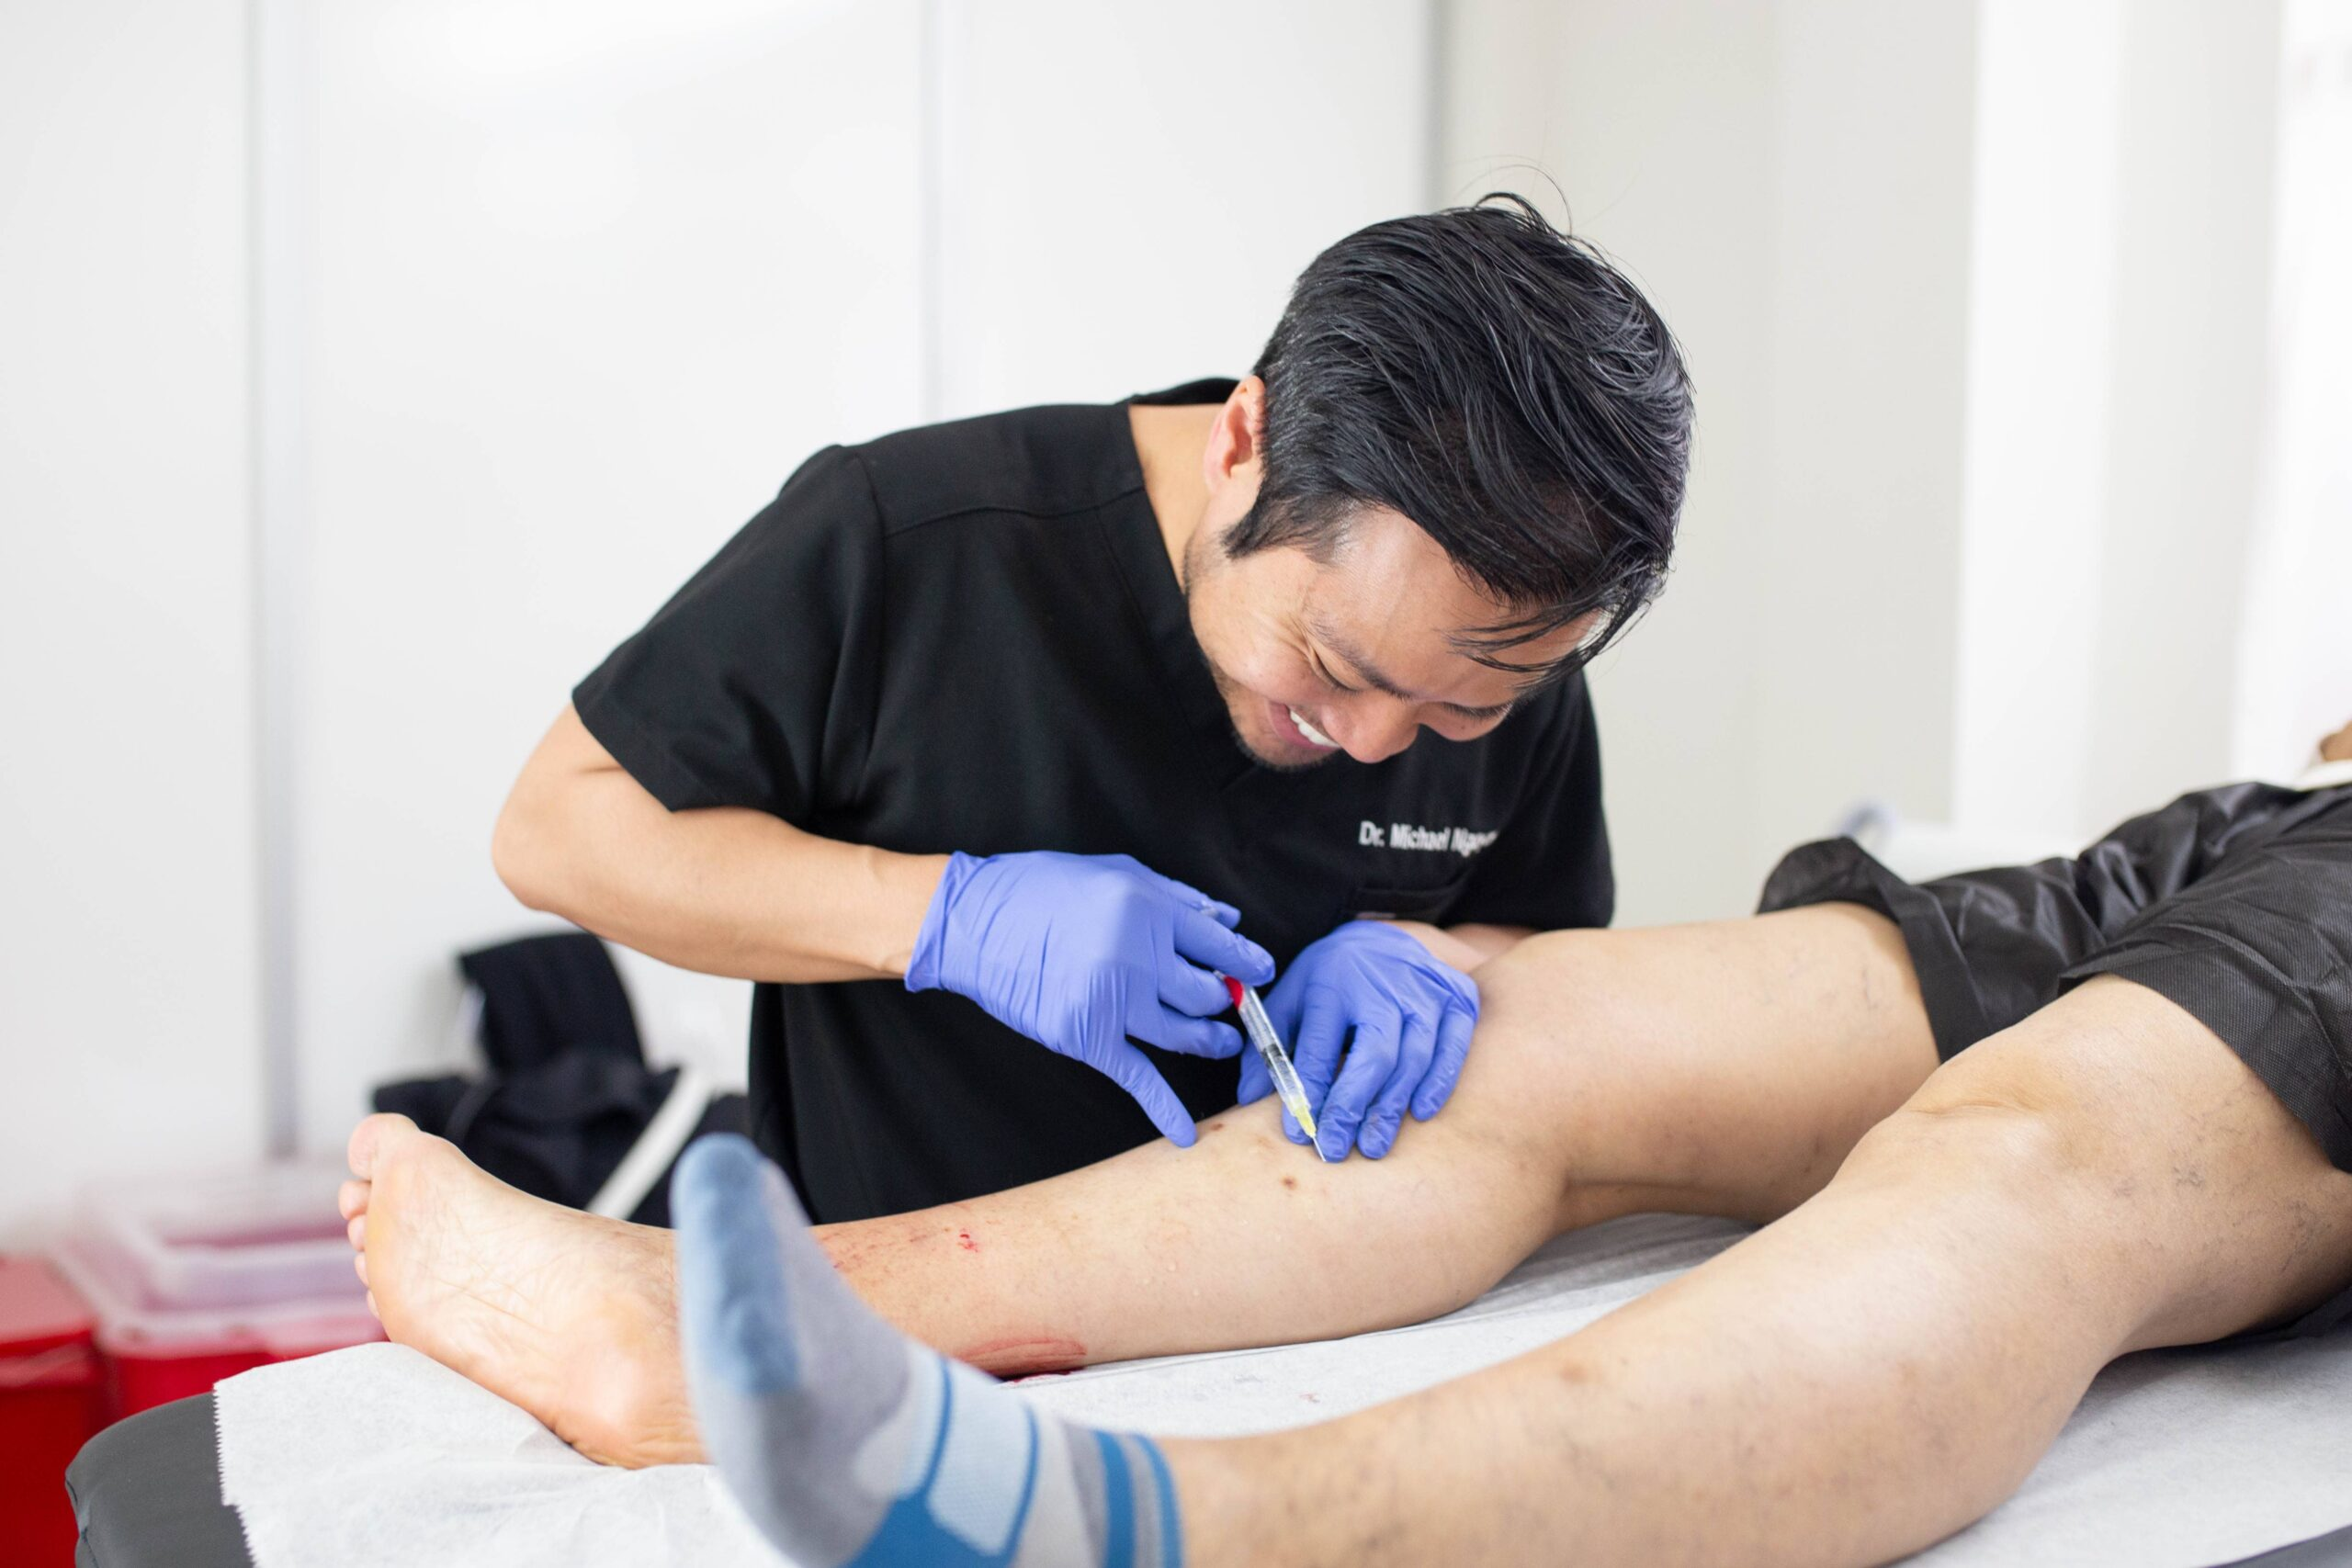 Are you bothered by how your veins look? That's a good reason to visit a vein center in Manhattan. But there are many reasons beyond appearance. Here are the top 9.